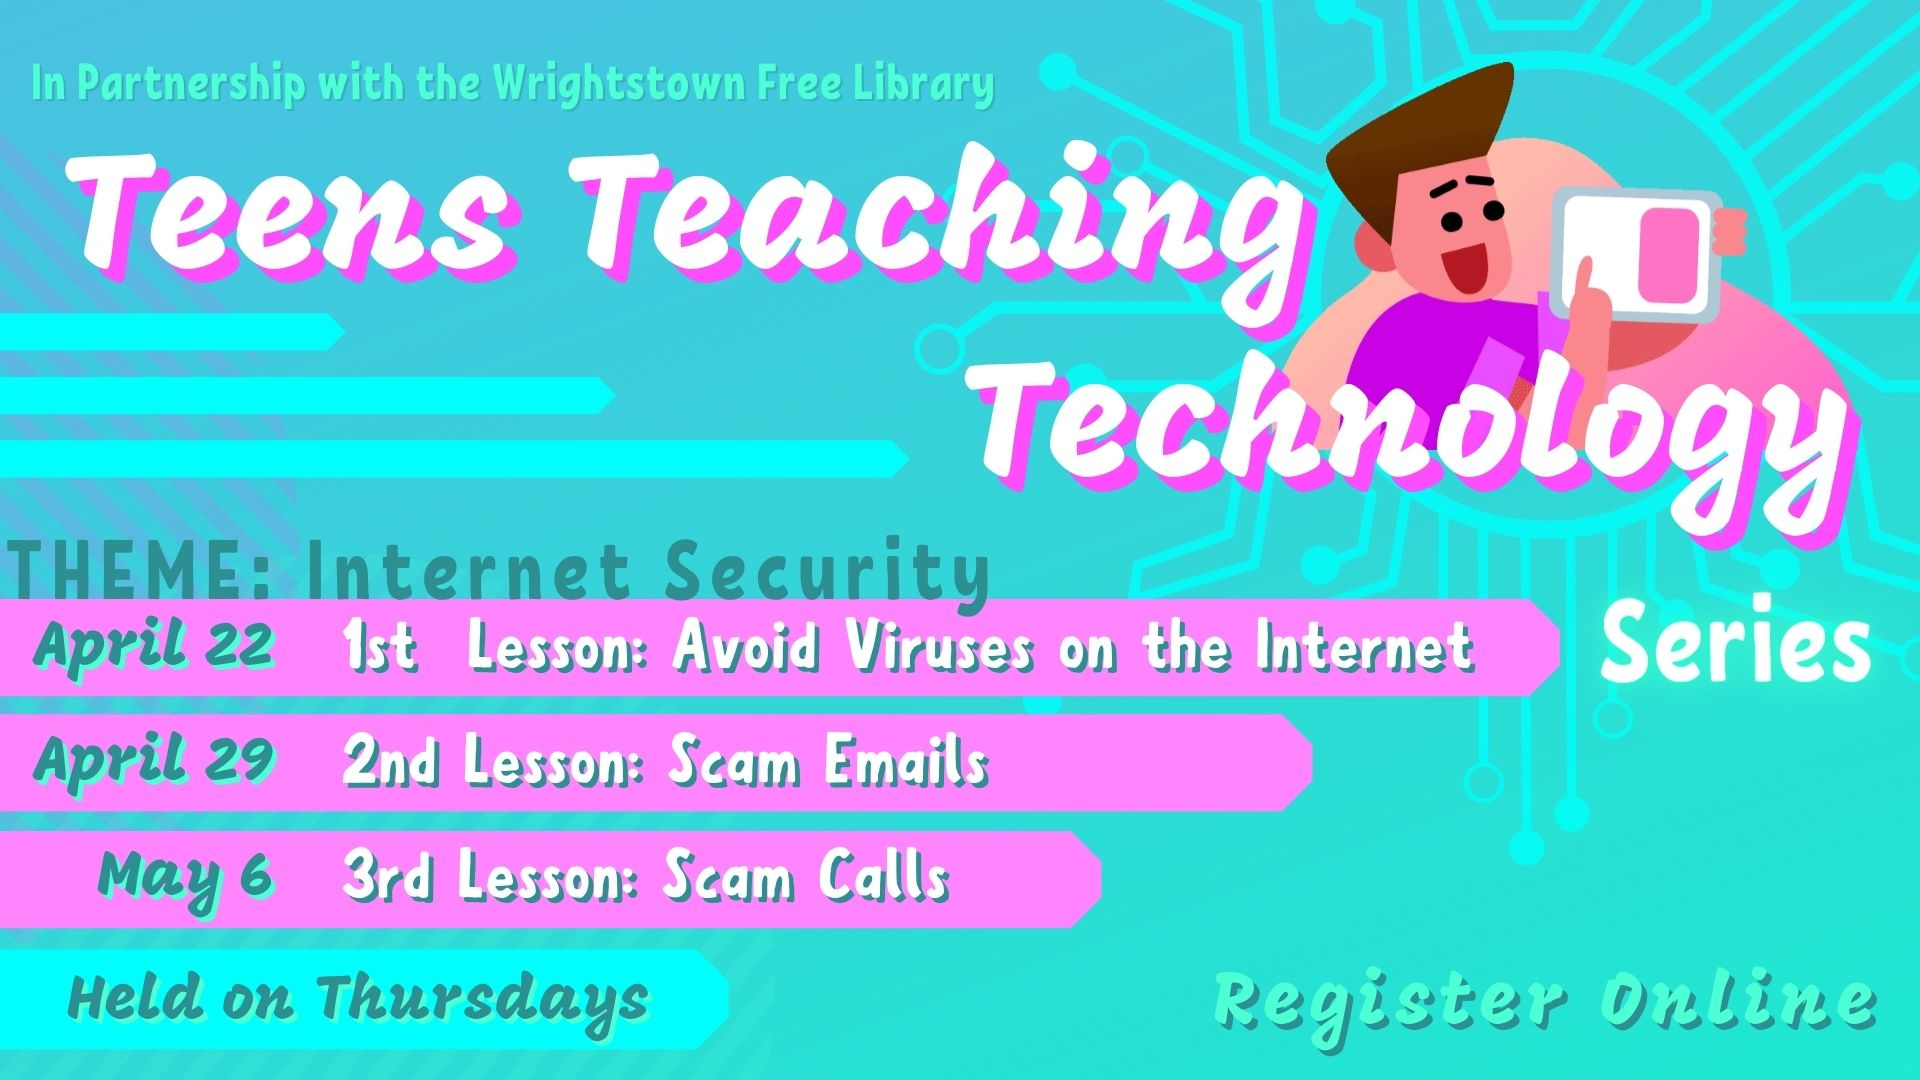 Teens Teaching Technology Series: Internet Security - Avoiding Viruses